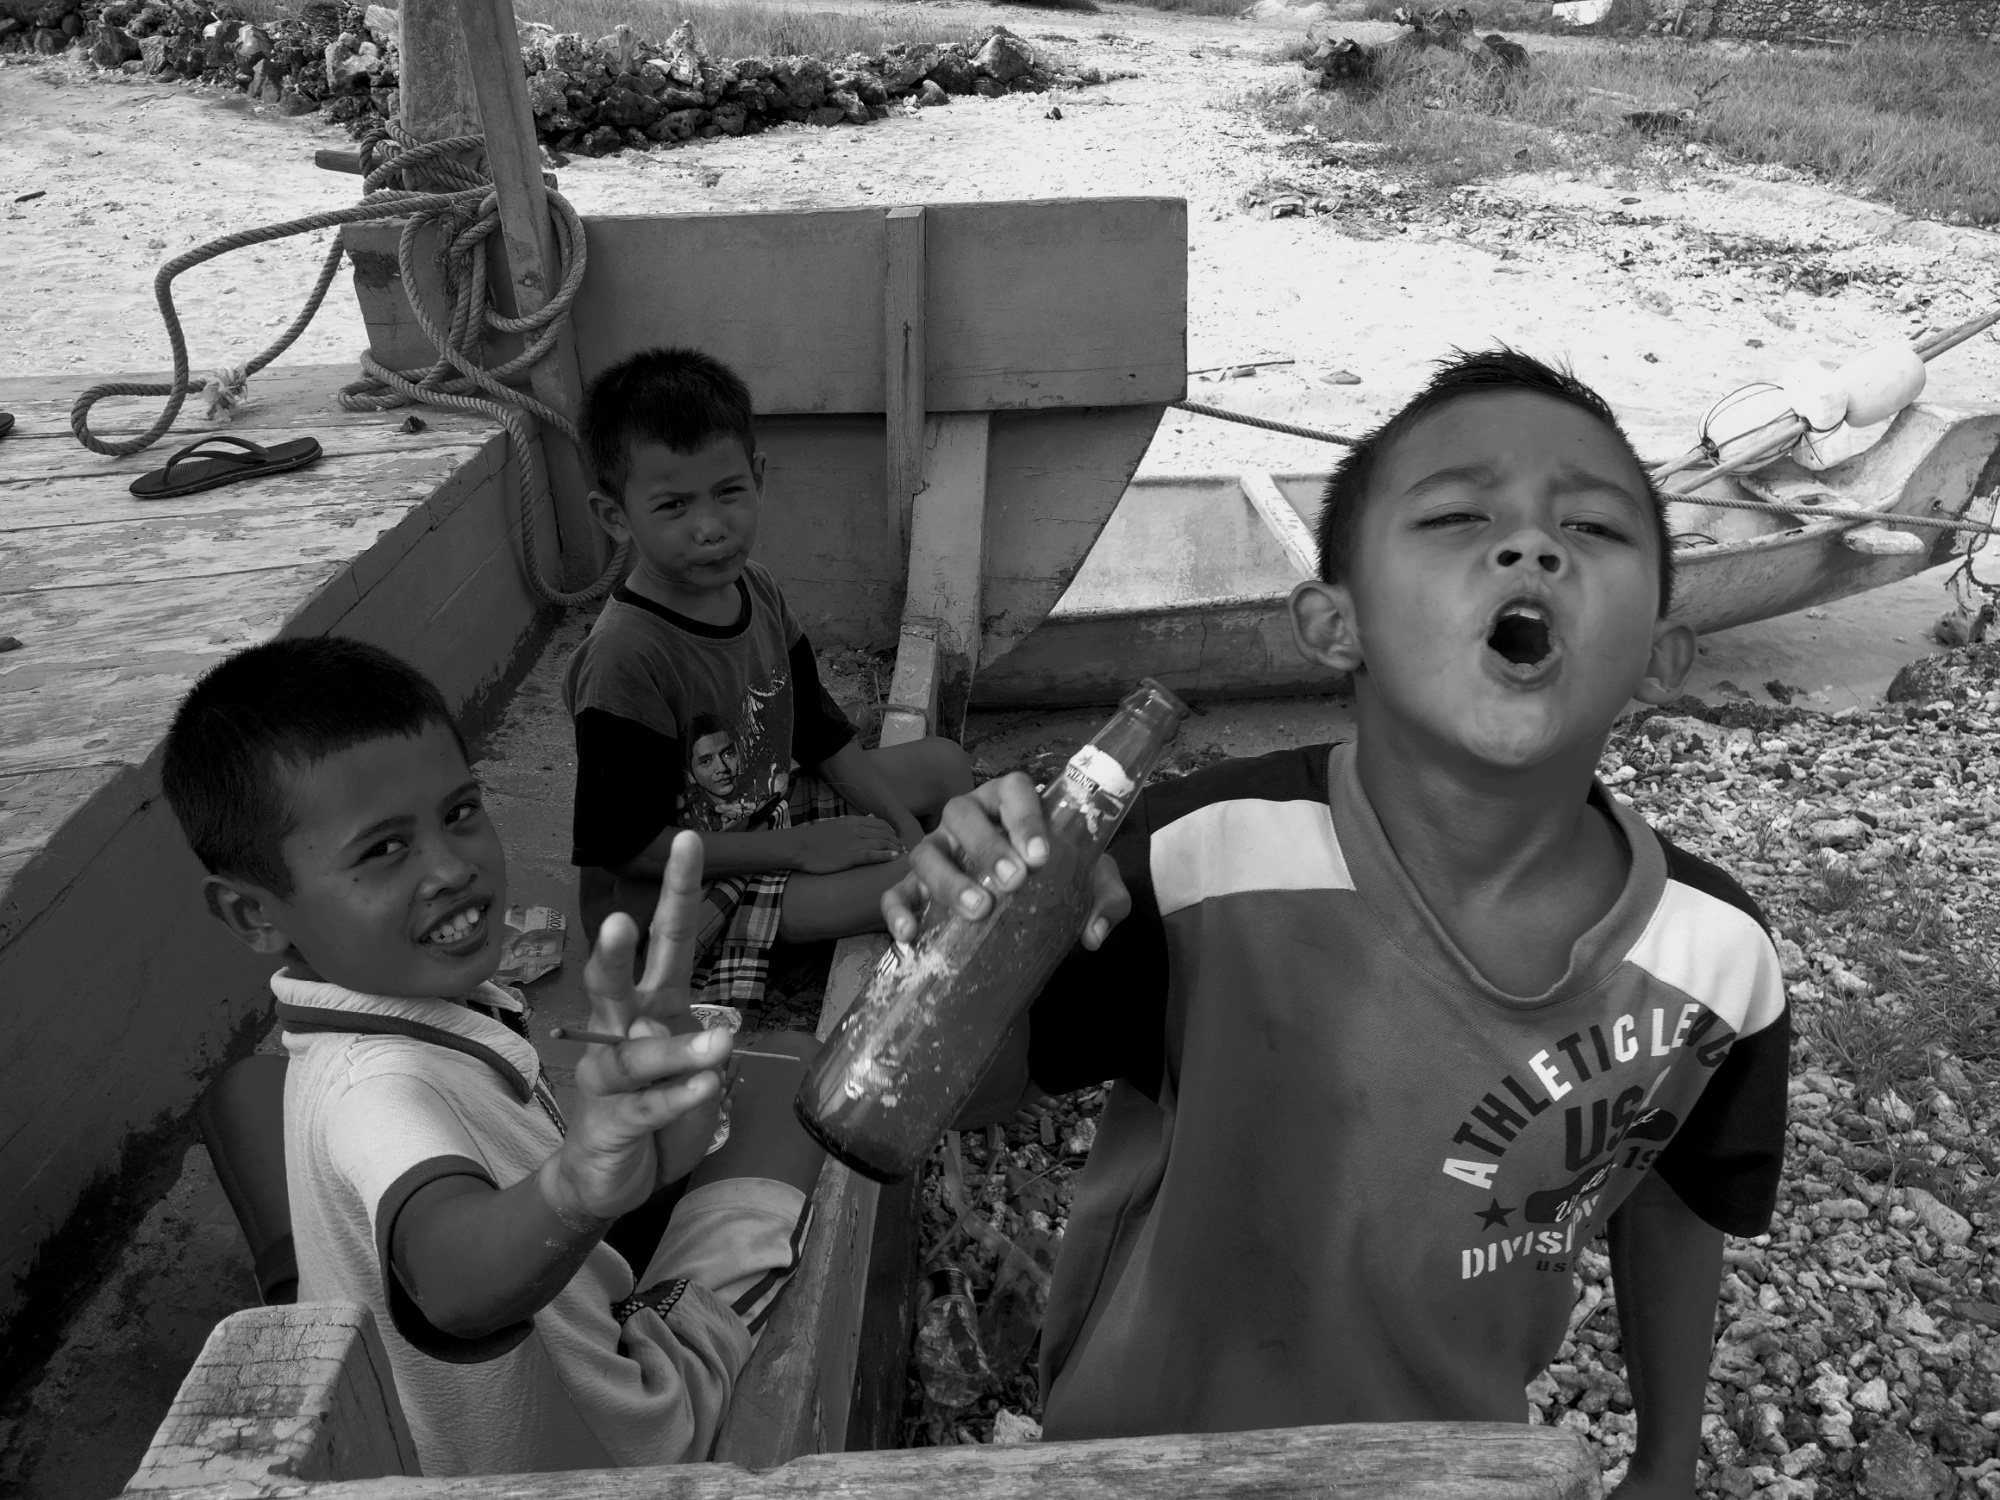 Three kids imitating adult activities like gambling, drinking and smoking. I was quite surprised to see these kids do that while playing. They probably experience  this scenario everyday involving their parents and other elder folk at their homes doing these same things.  It was a powerful message delivered to me at least and we should learn that we as adults have to be more responsible and sensitive on such issues especially when children are involved.Children are inspired by their parents and elders in both positive or negative ways.